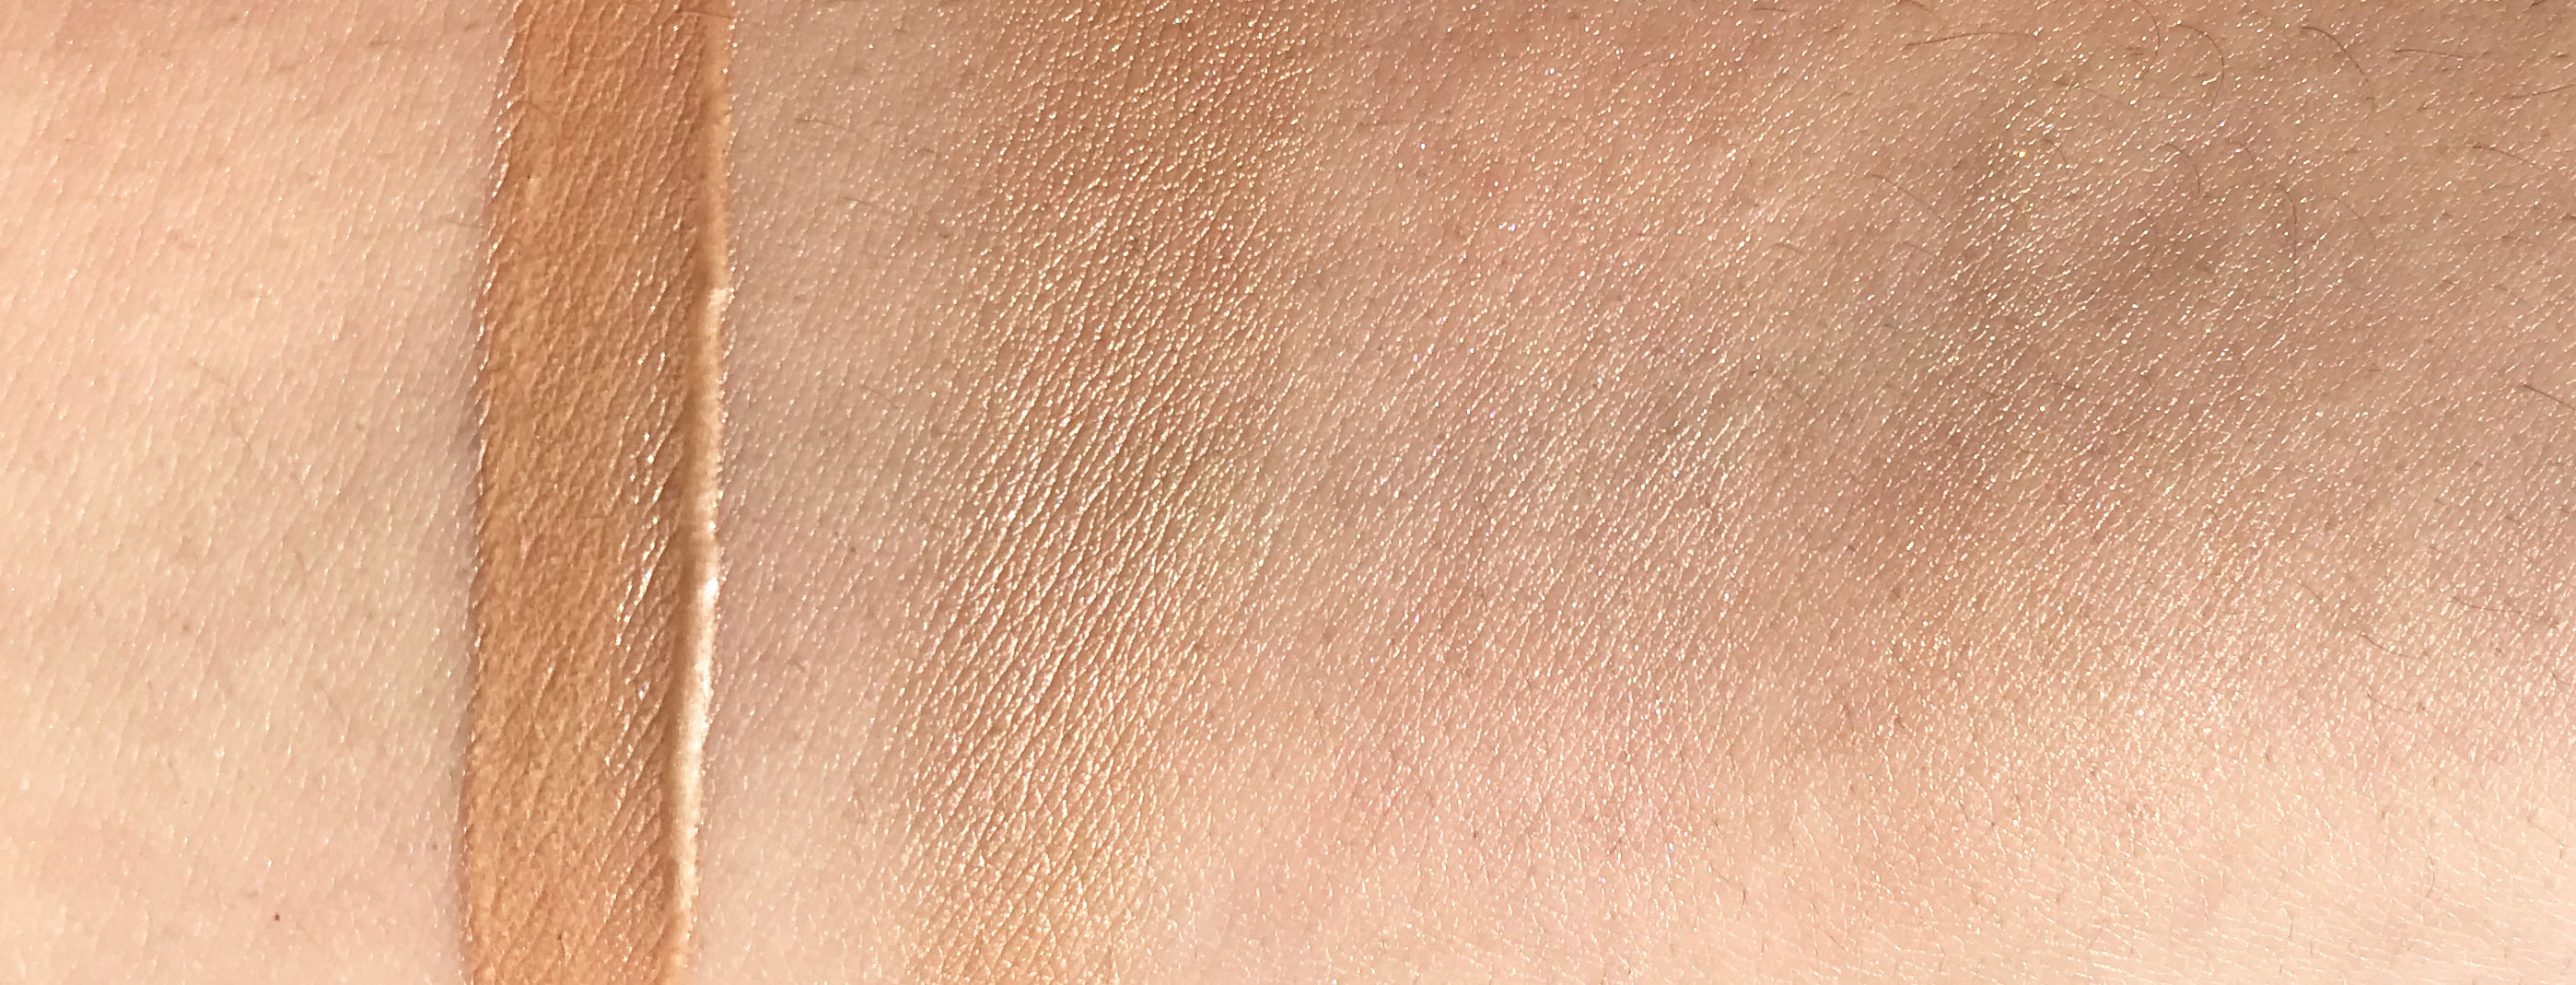 Hollywood Flawless Filter by Charlotte Tilbury #11